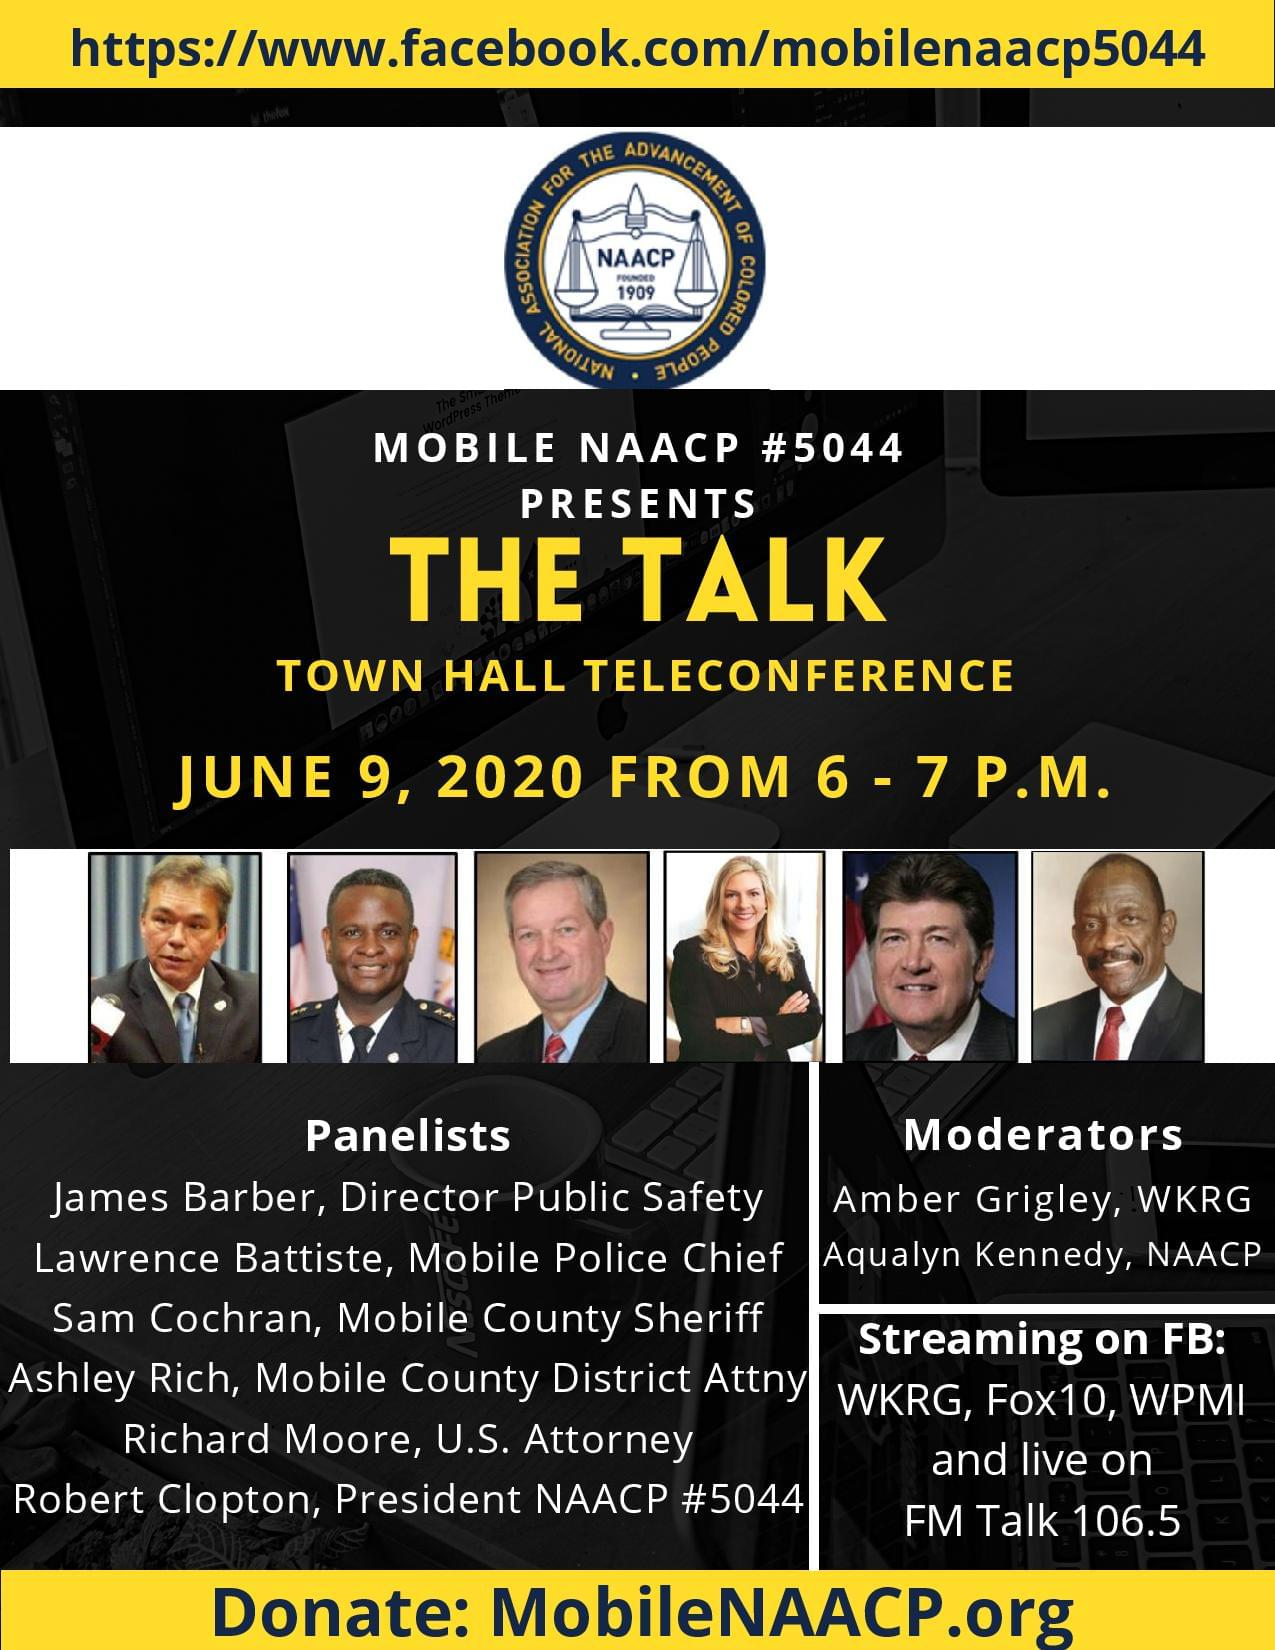 THE CITY OF MOBILE COMES TOGETHER TO TALK